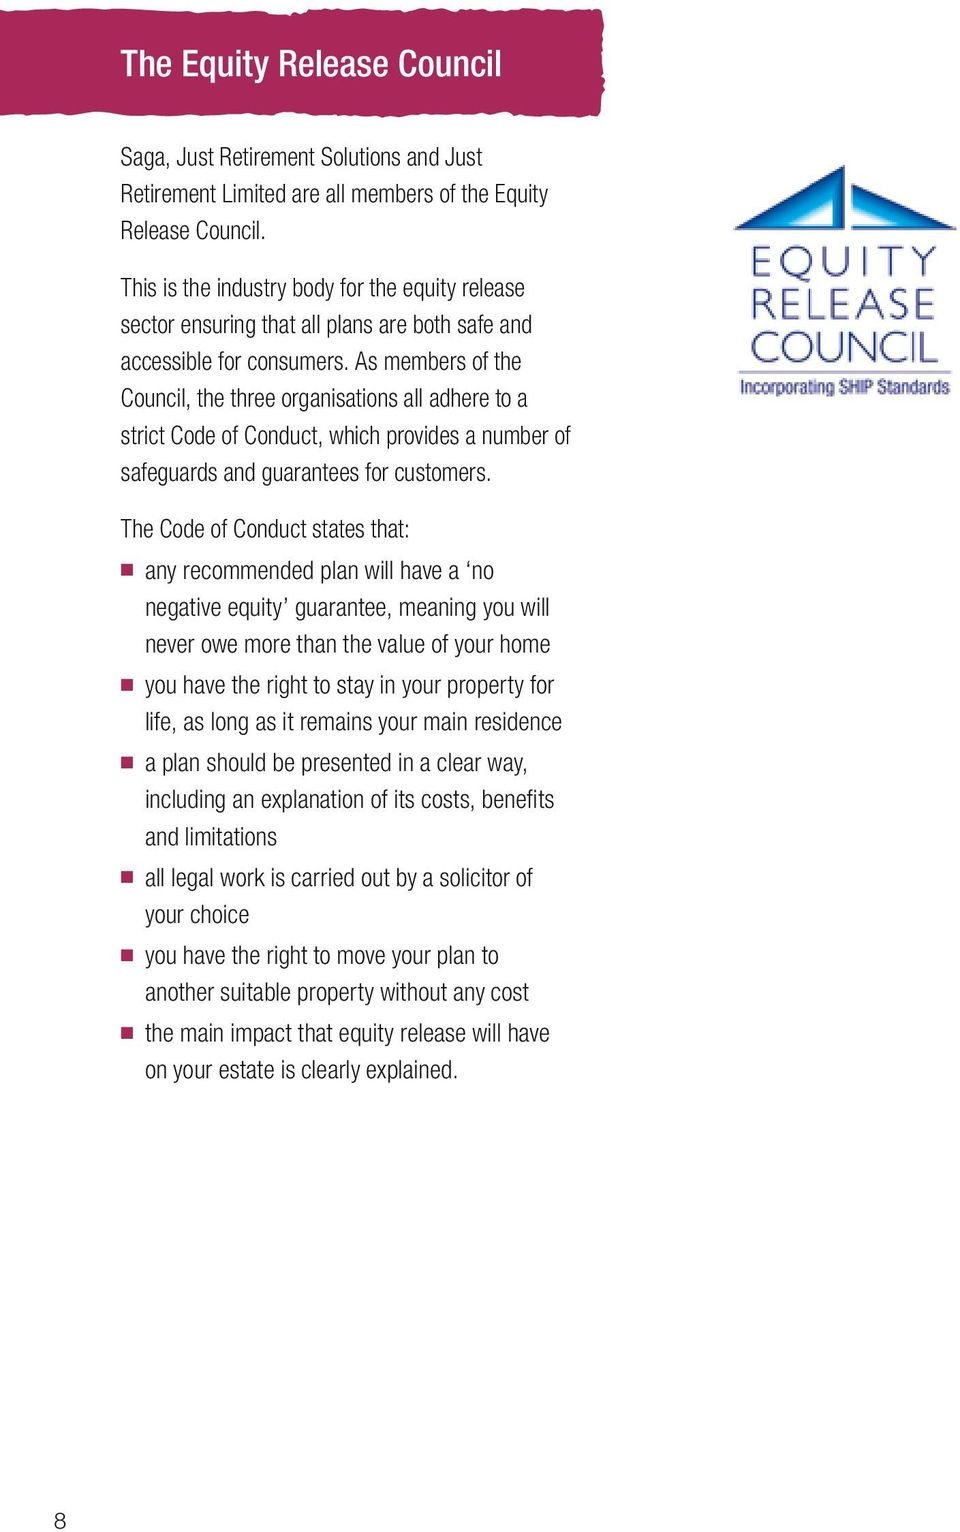 As members of the Council, the three organisations all adhere to a strict Code of Conduct, which provides a number of safeguards and guarantees for customers.